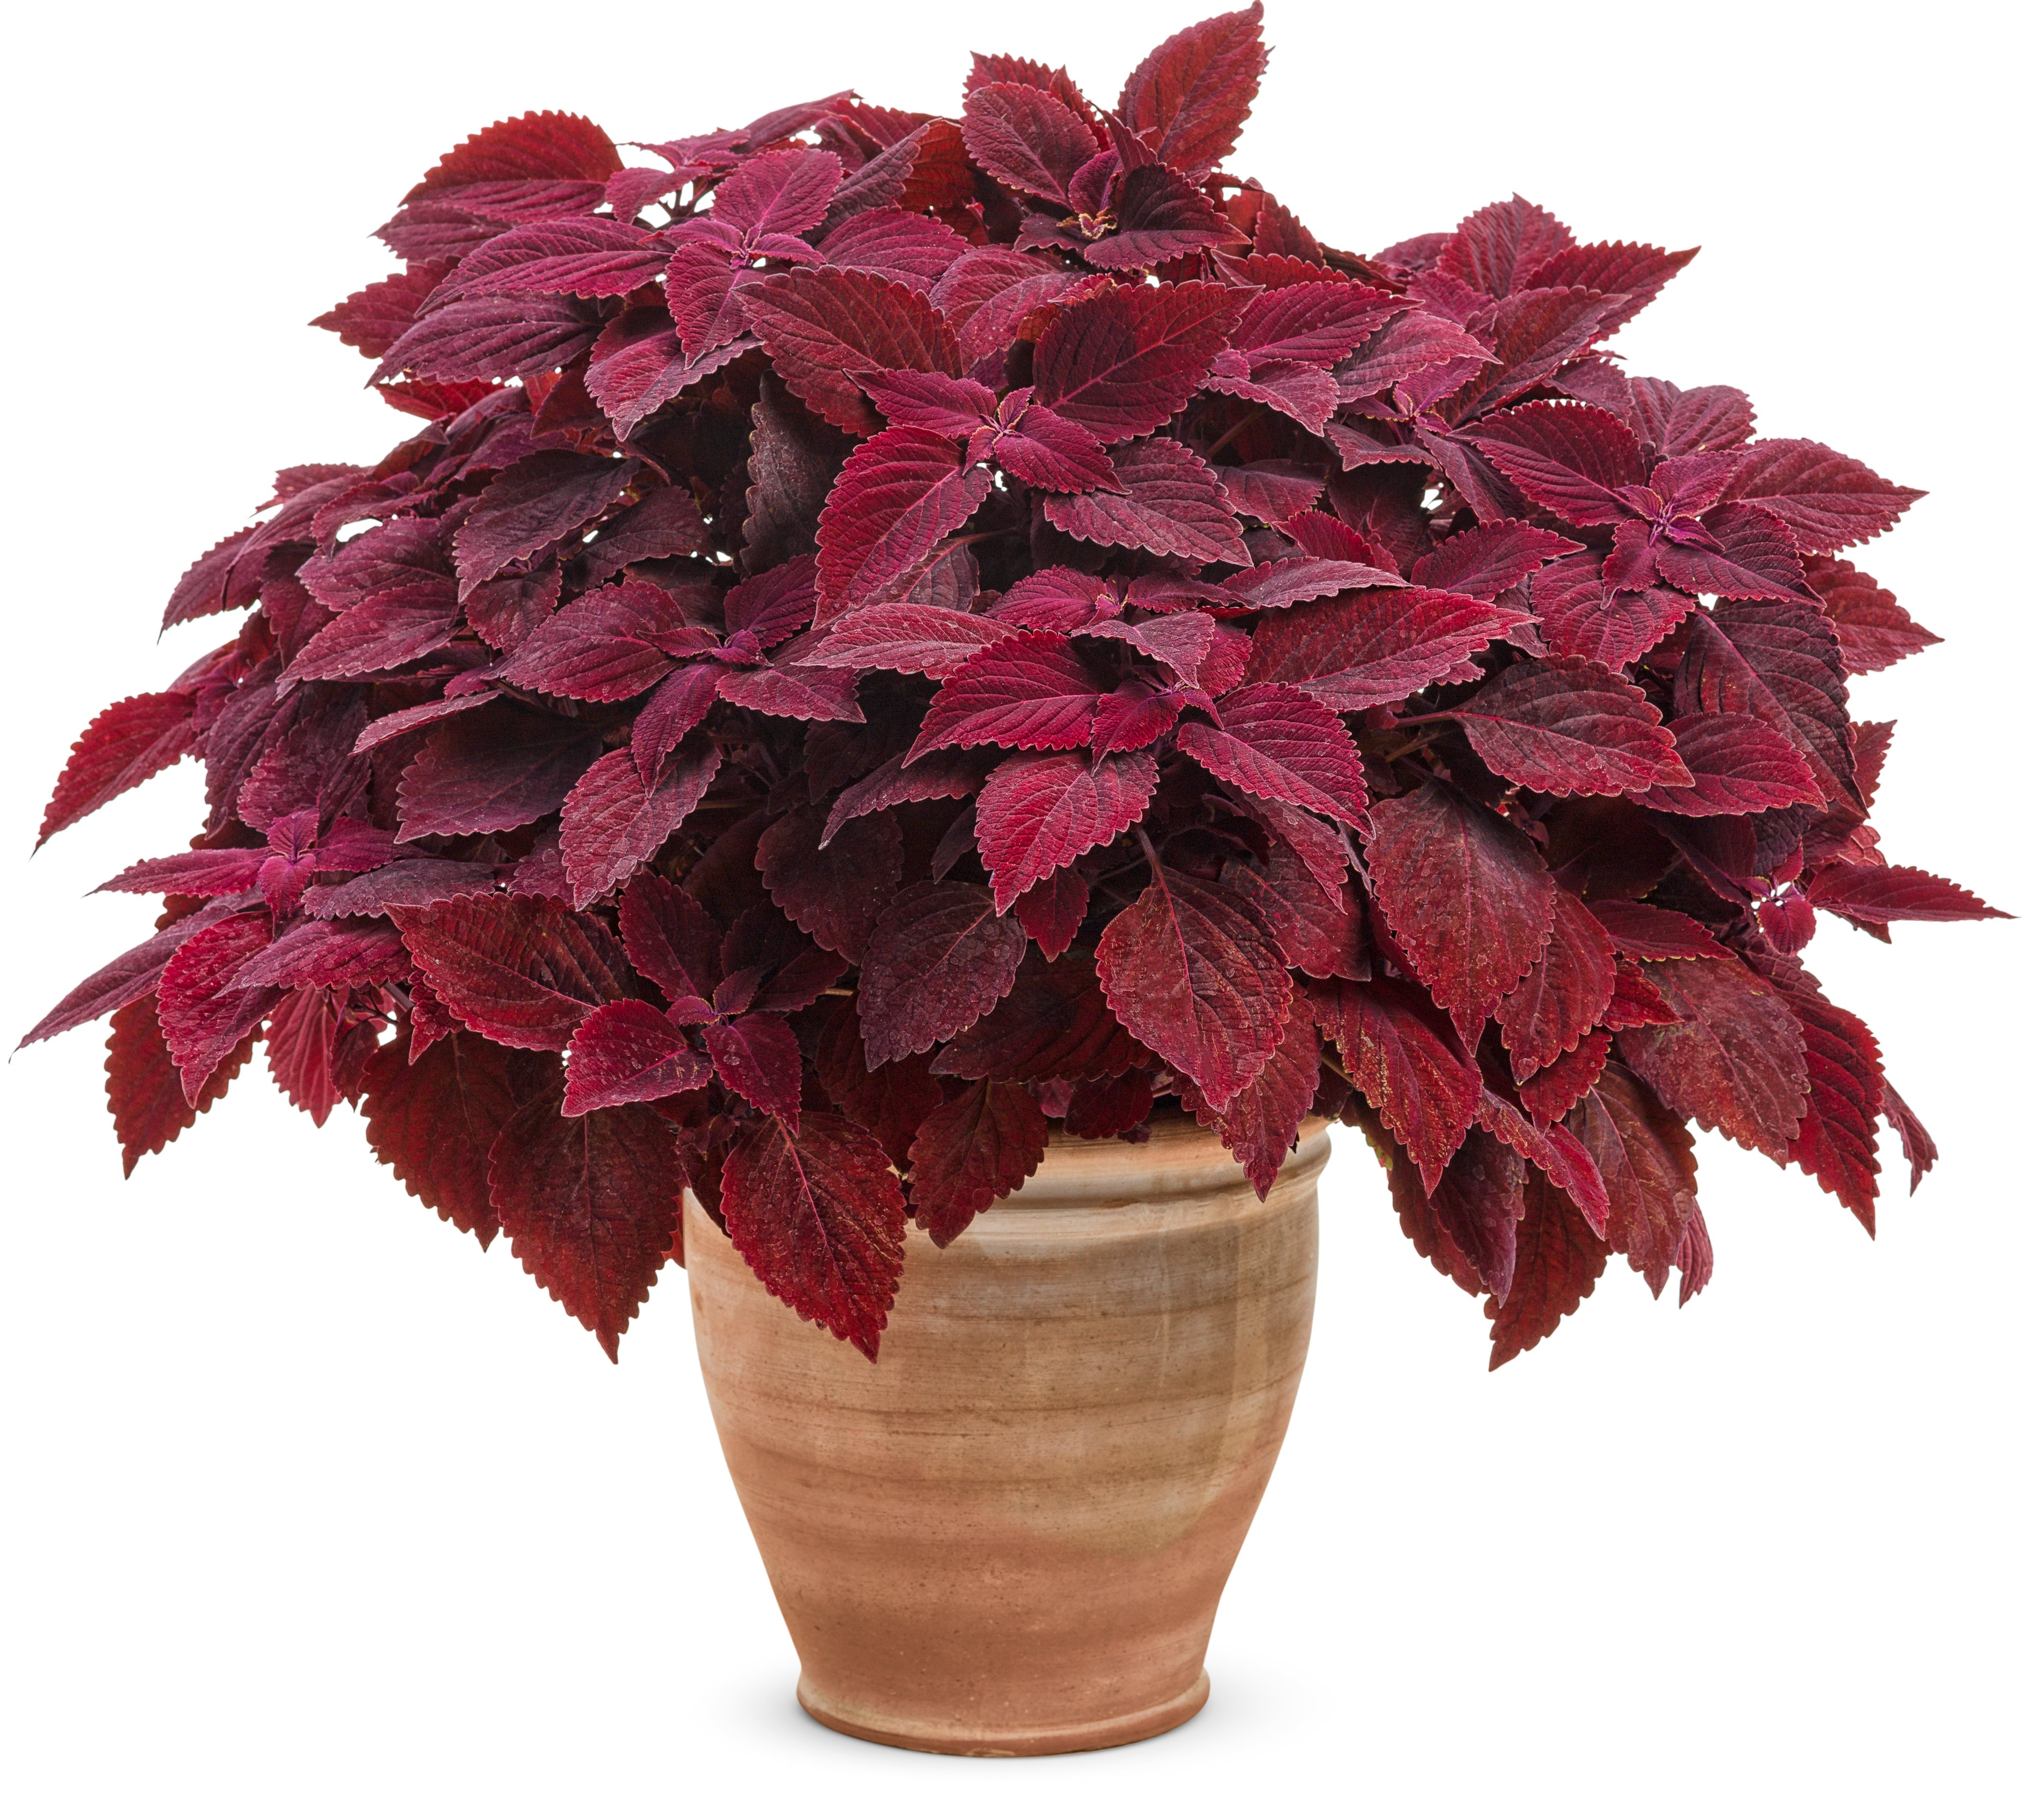 /Images/johnsonnursery/product-images/solenostemon_colorblaze_rediculous_mono_ld4glogd4.jpg